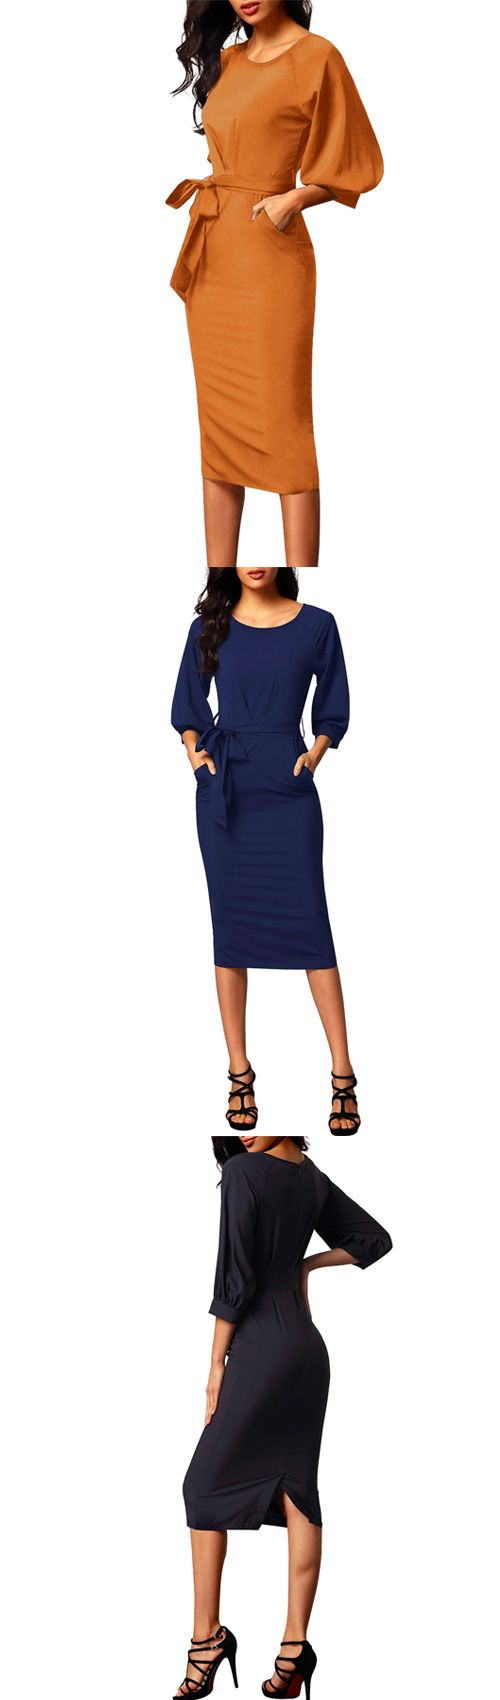 Women's Party Simple Round Neck Midi 3/4 Length Sleeves Bodycon Dress